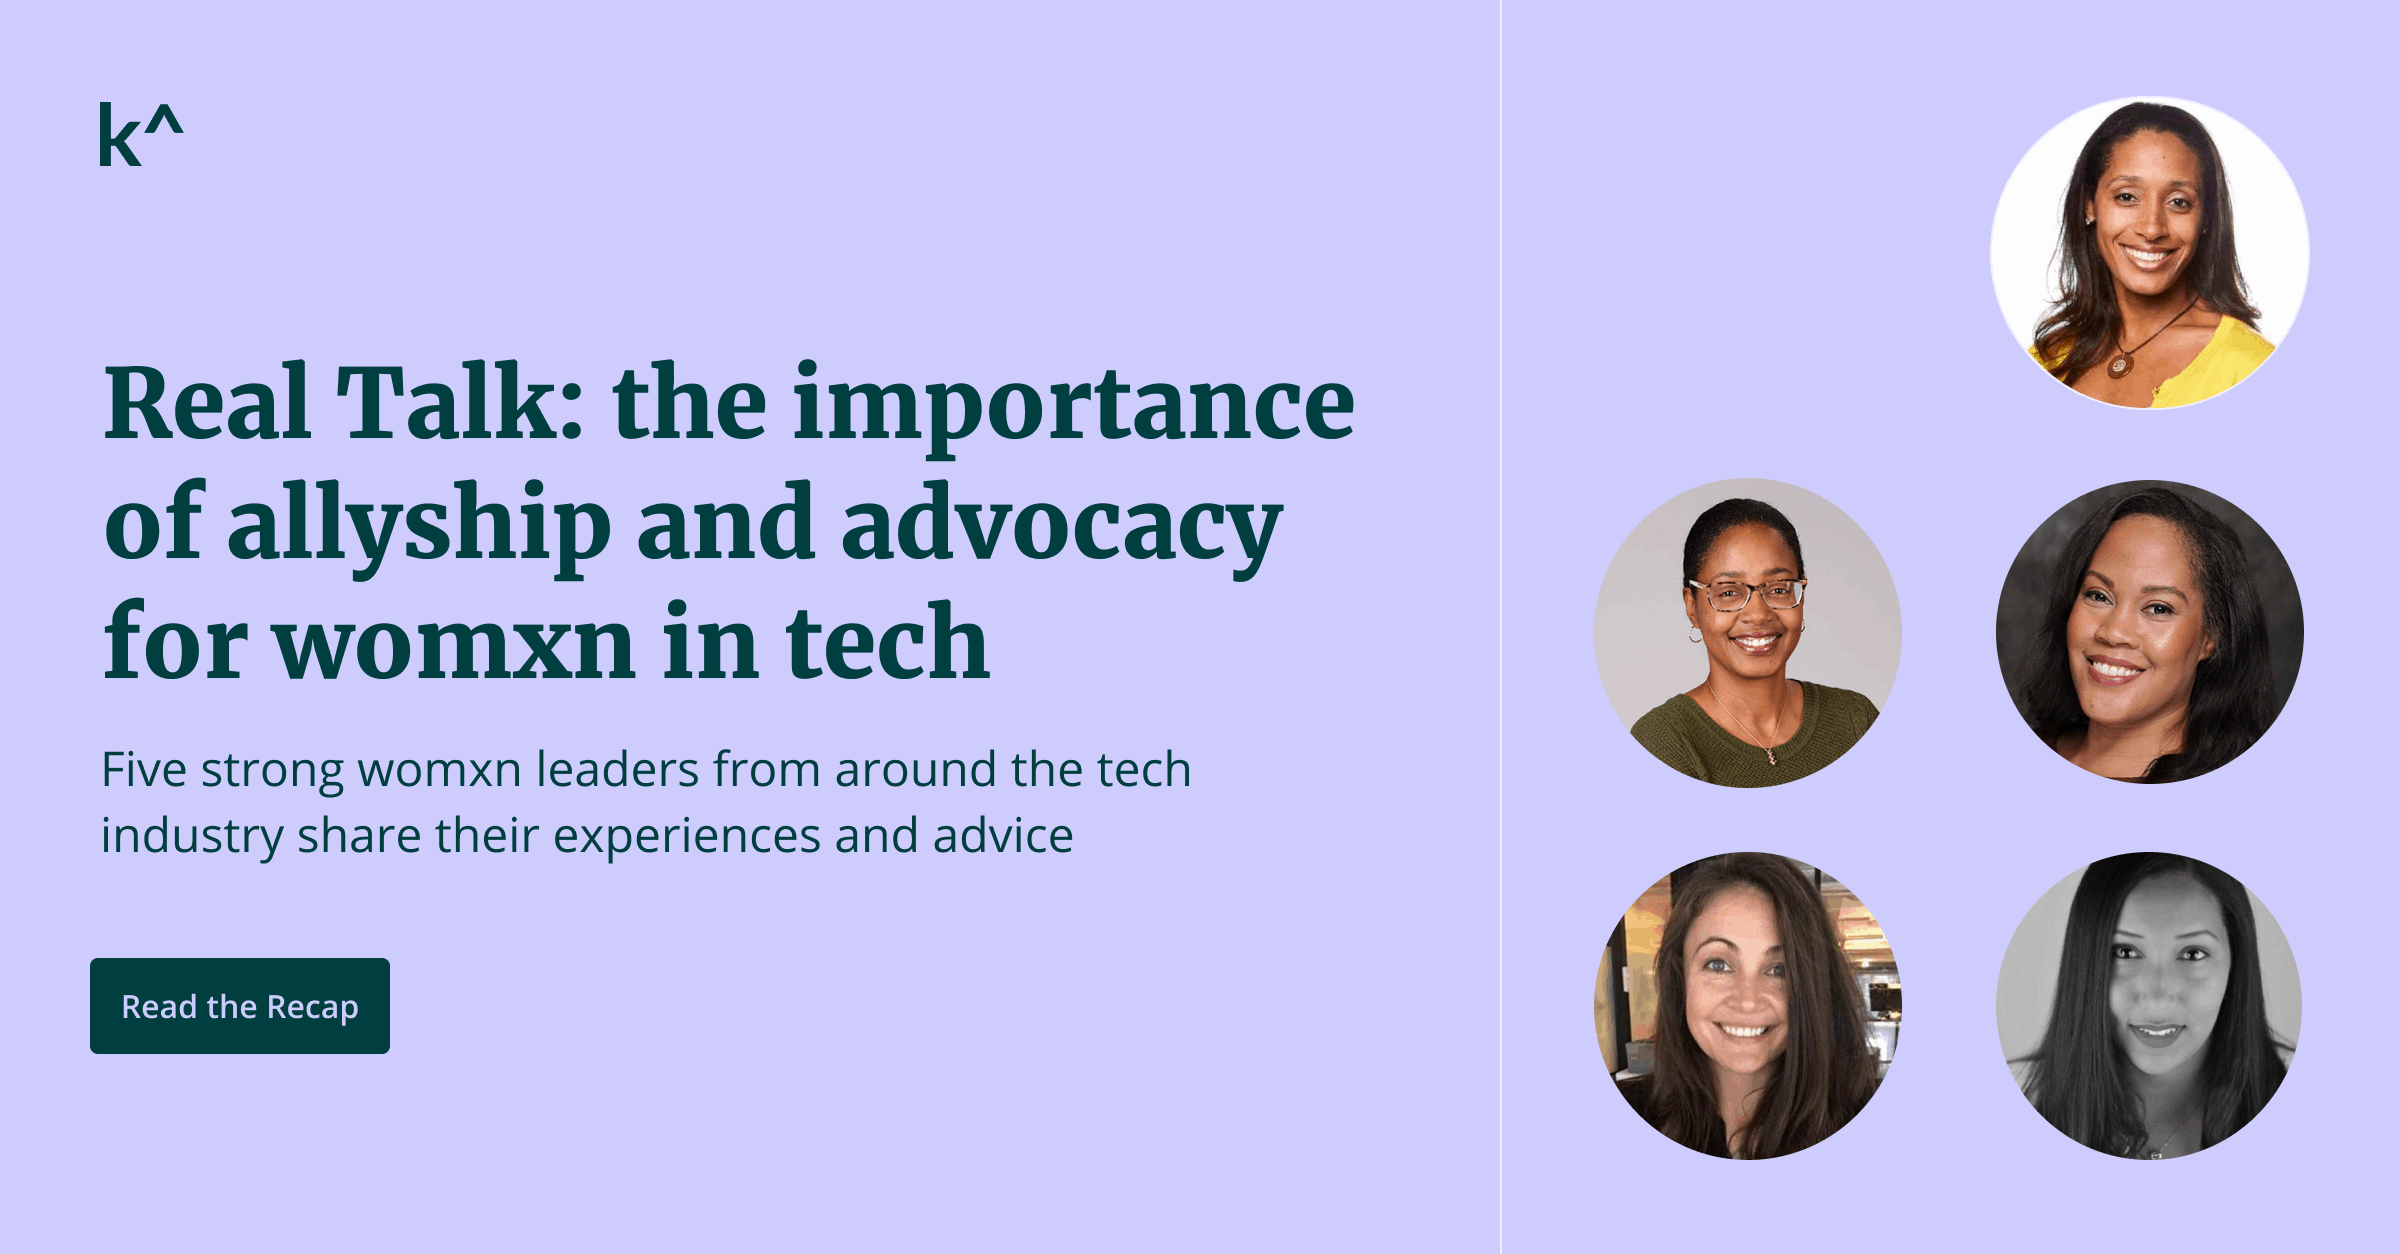 Real Talk: the importance of allyship and advocacy for womxn in tech